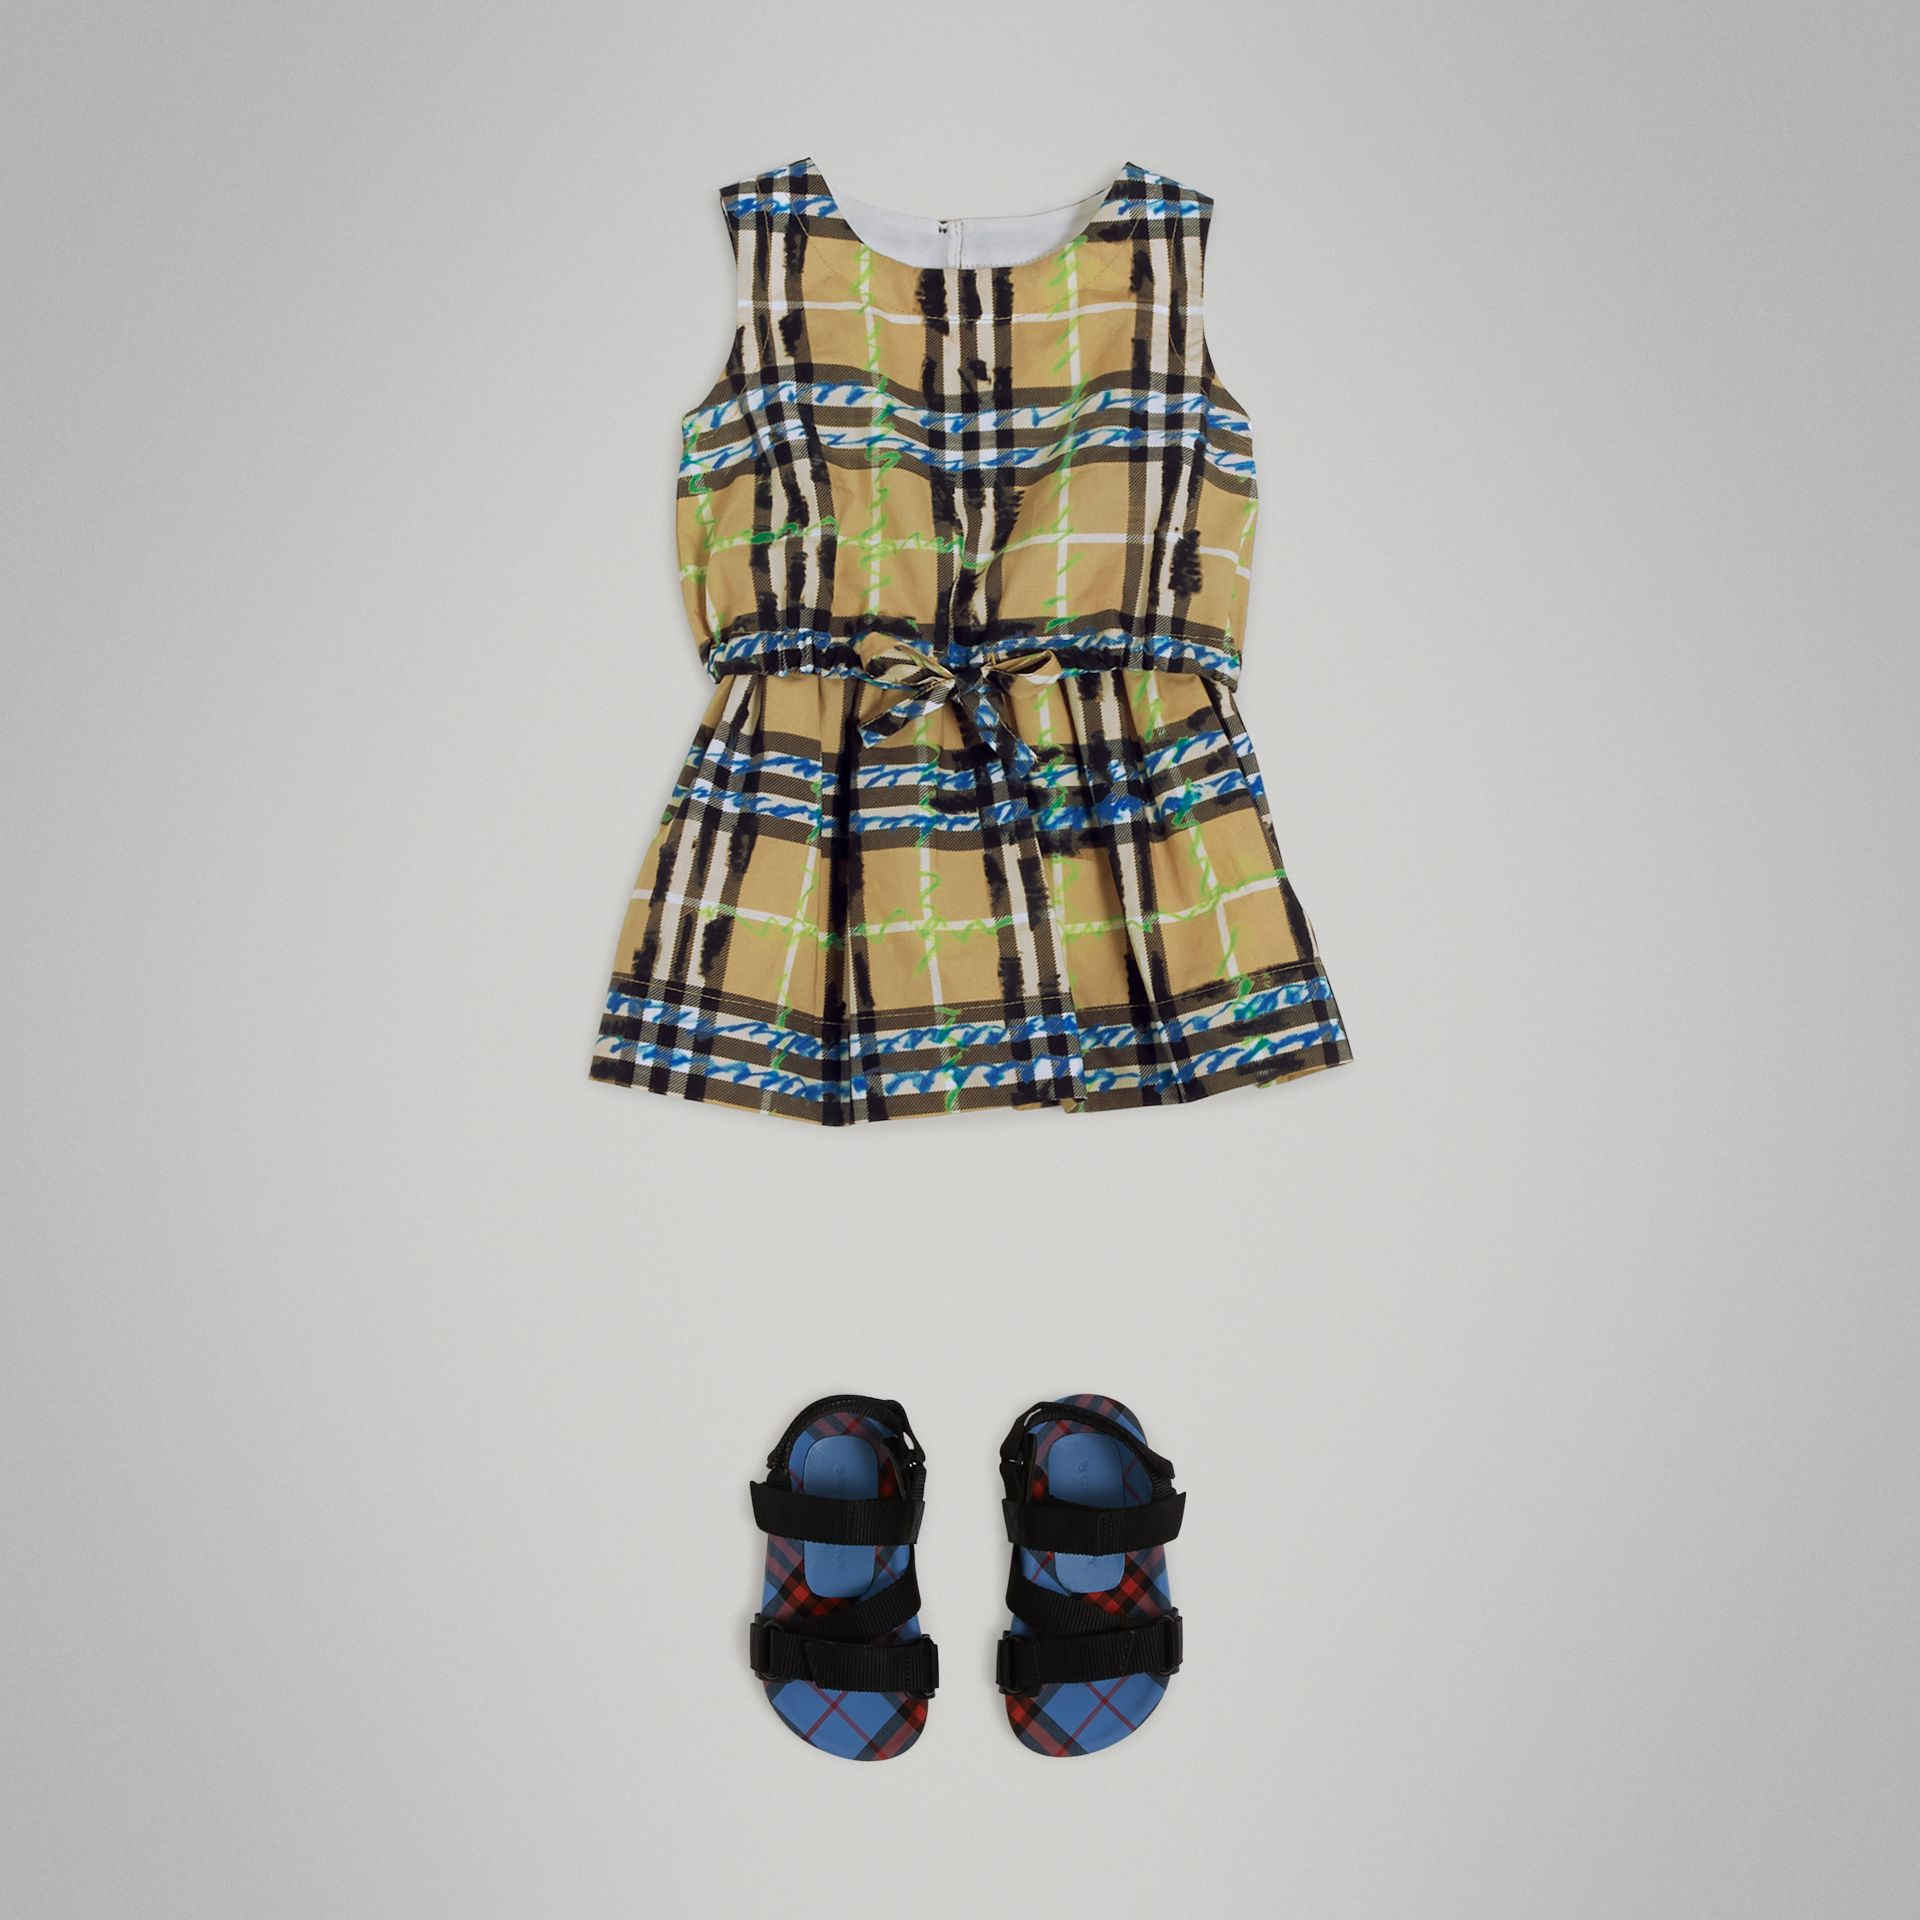 Scribble Check Print Cotton Drawcord Dress in Bright Blue - Children | Burberry - gallery image 2